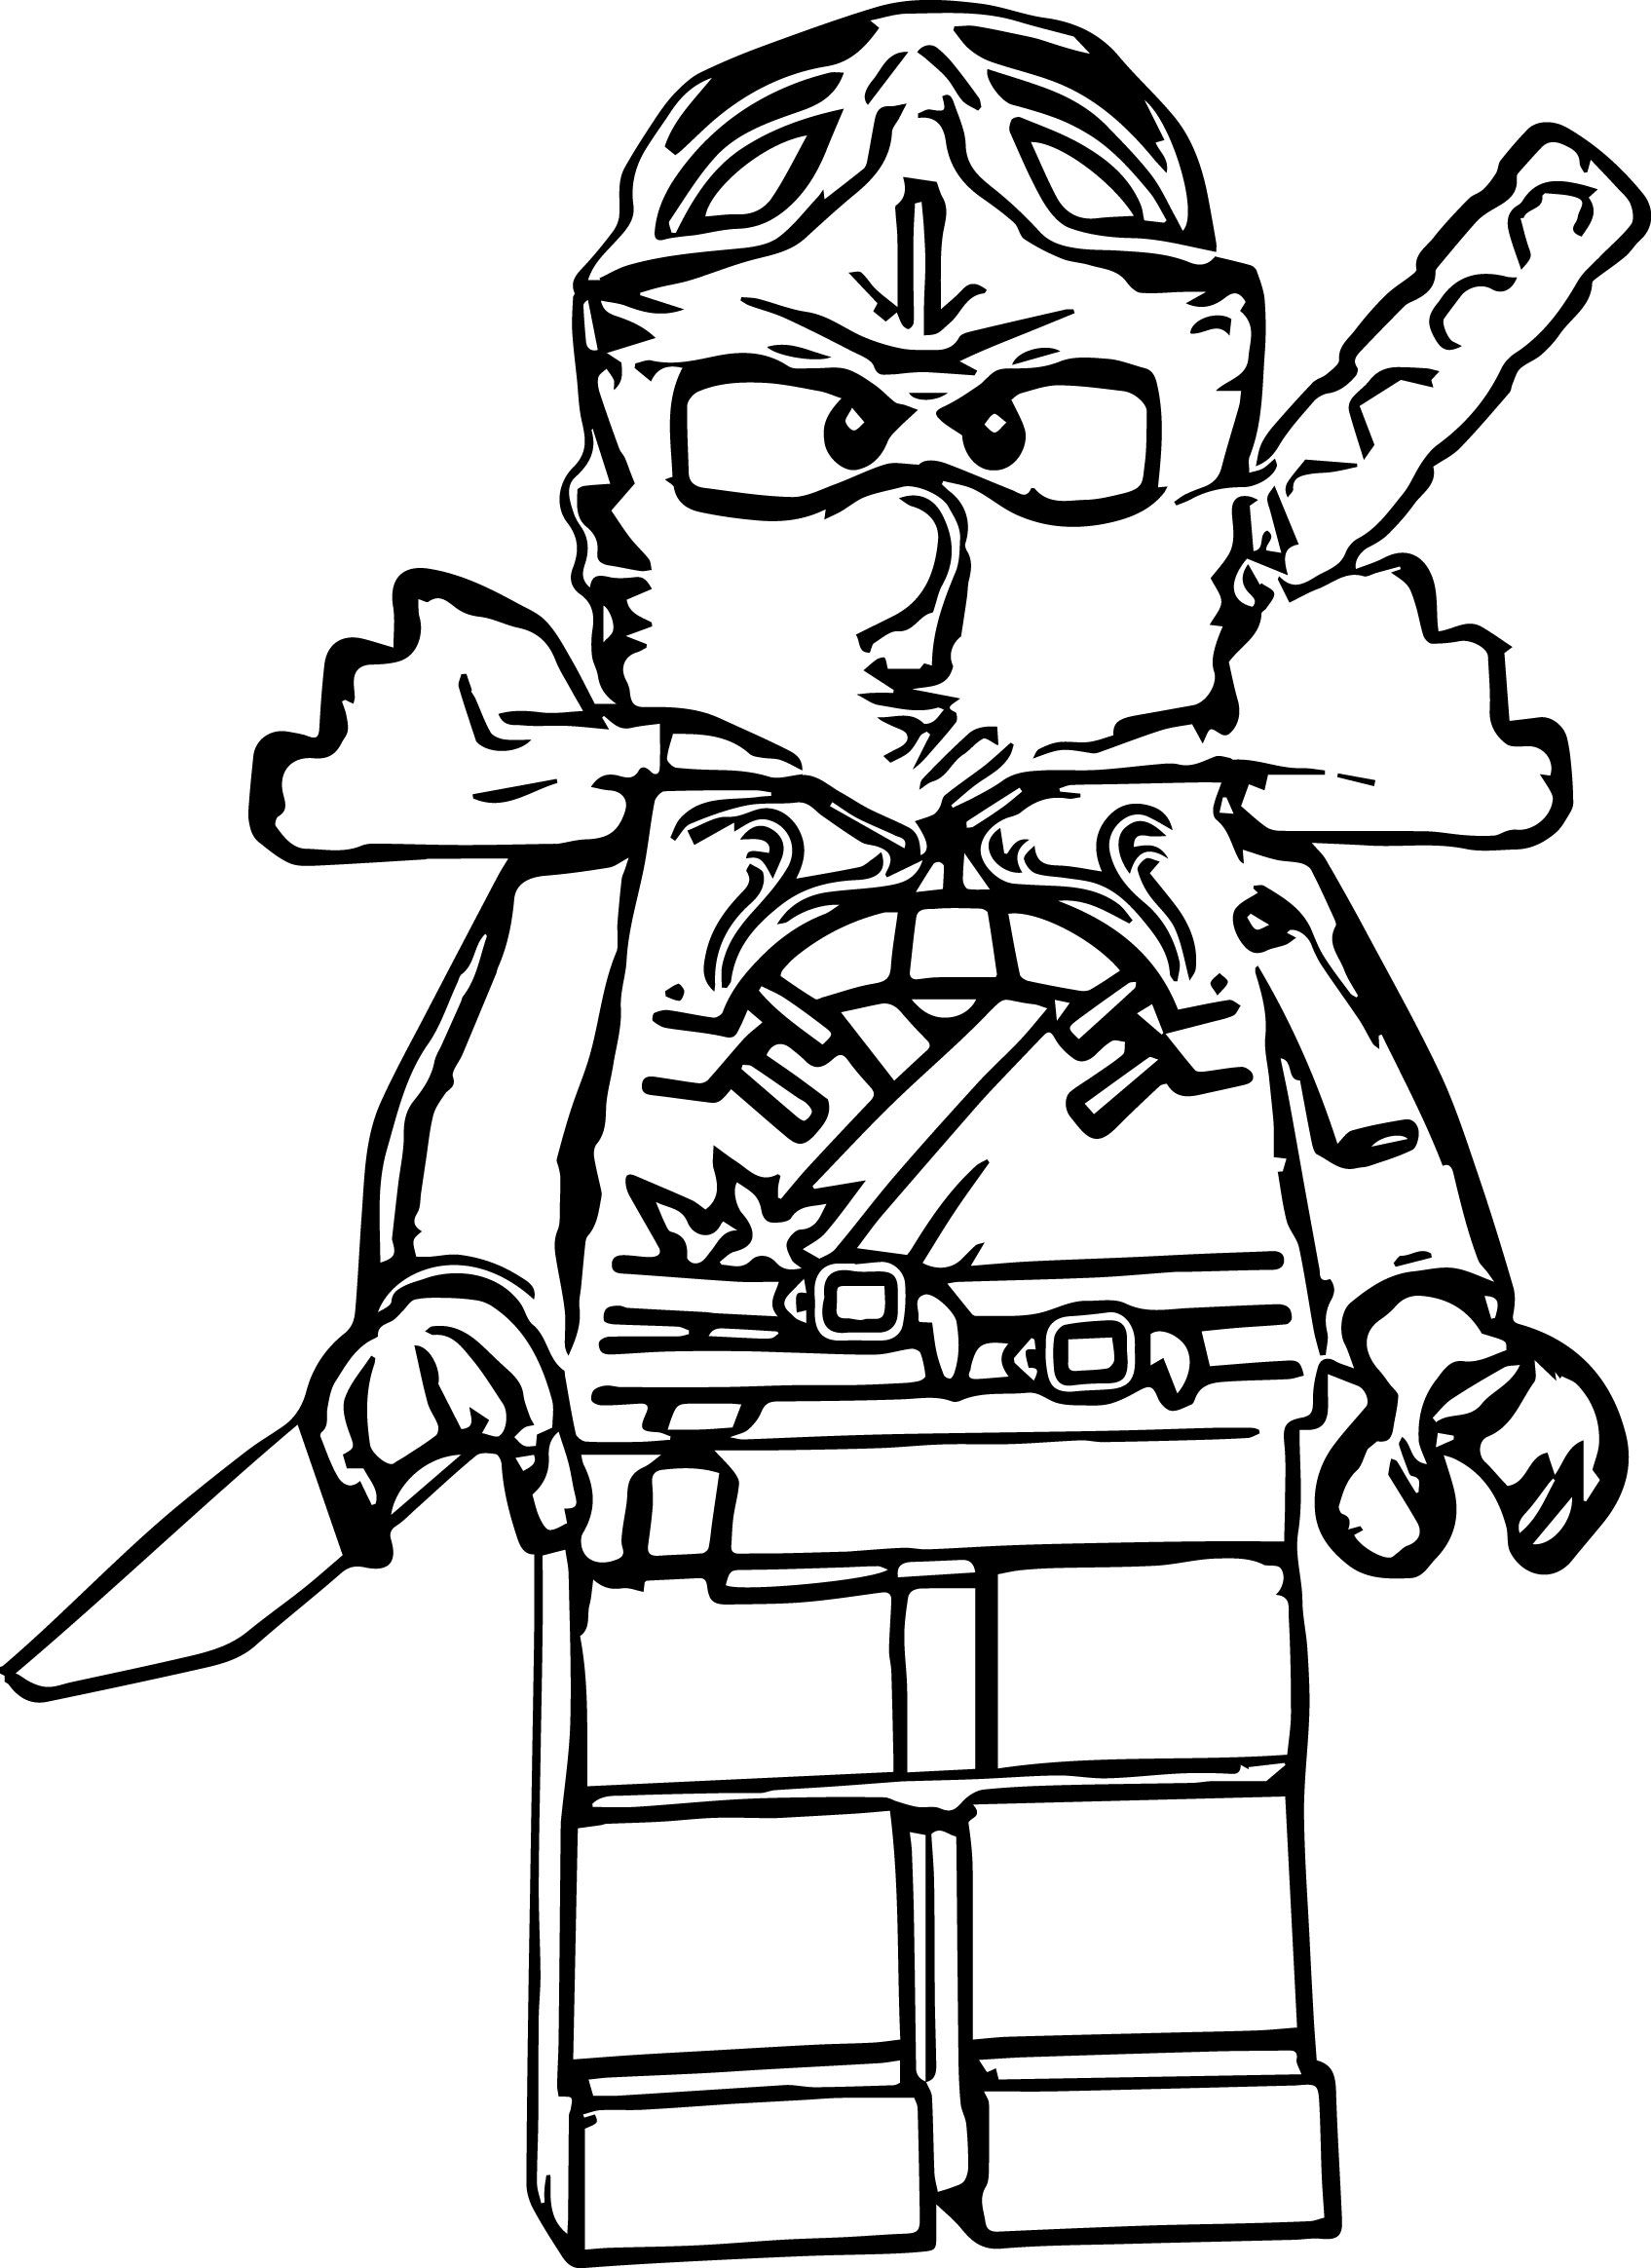 Ninjago Coloring Pages Coloring Kids Ninjago Coloring Pages